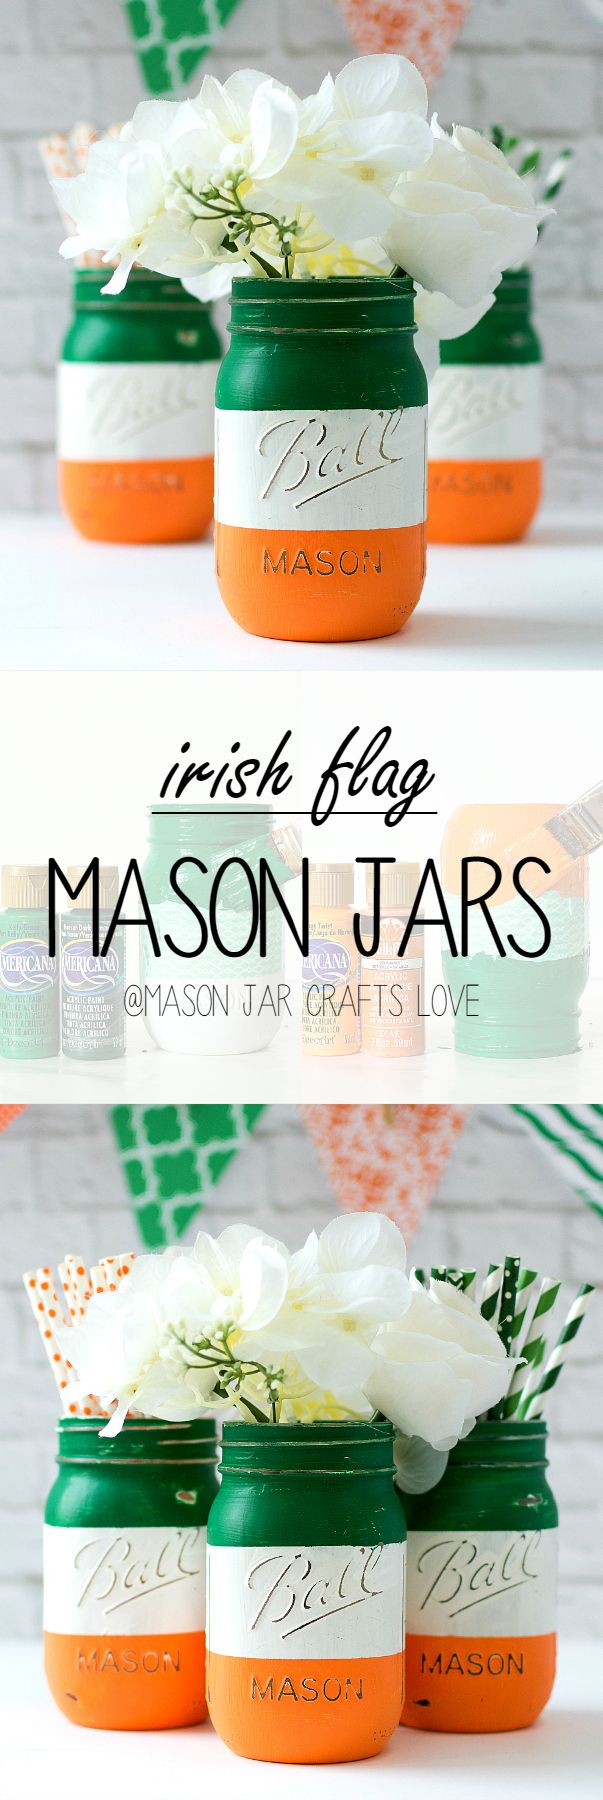 Mason Jar Craft Ideas - St Patricks Day Party Ideas